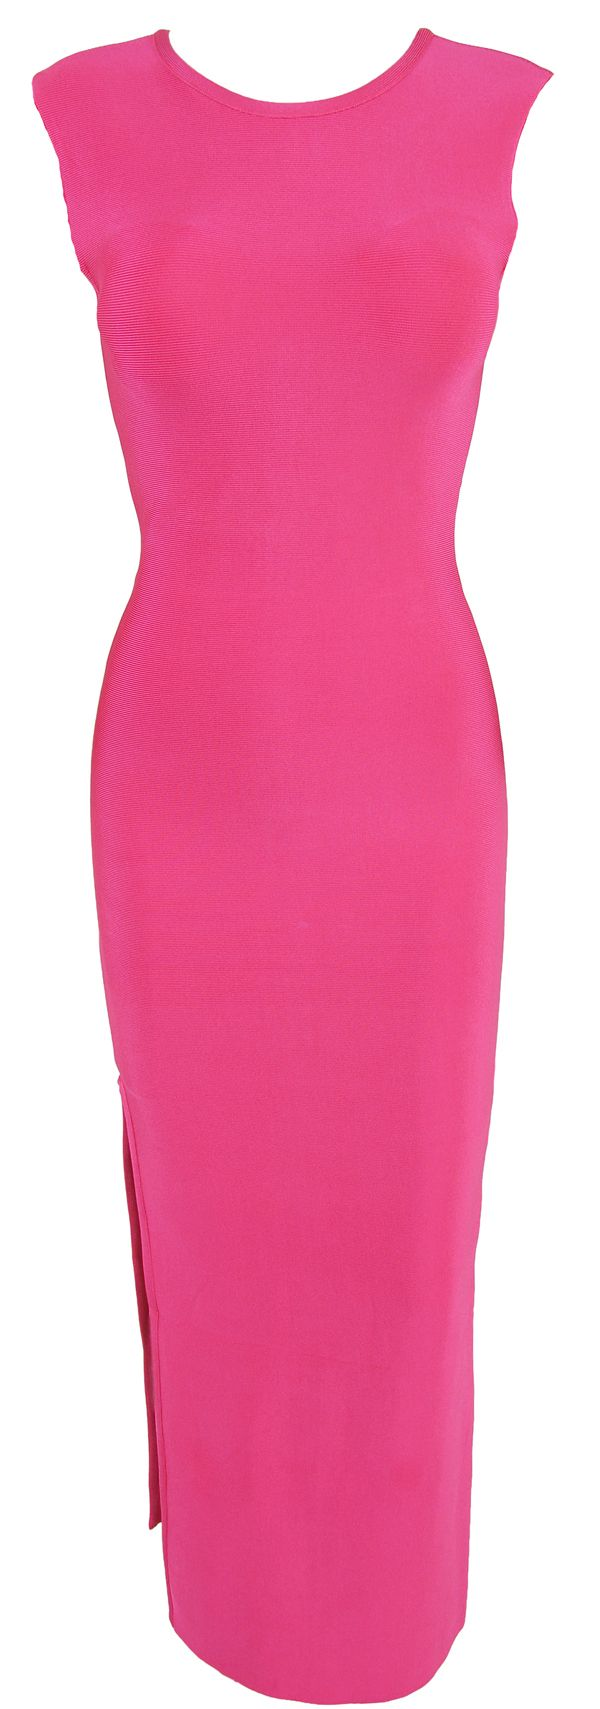 Hot pink maxi dress  Meliu Hot Pink Thigh Split Bandage Maxi Dress another sexy style for